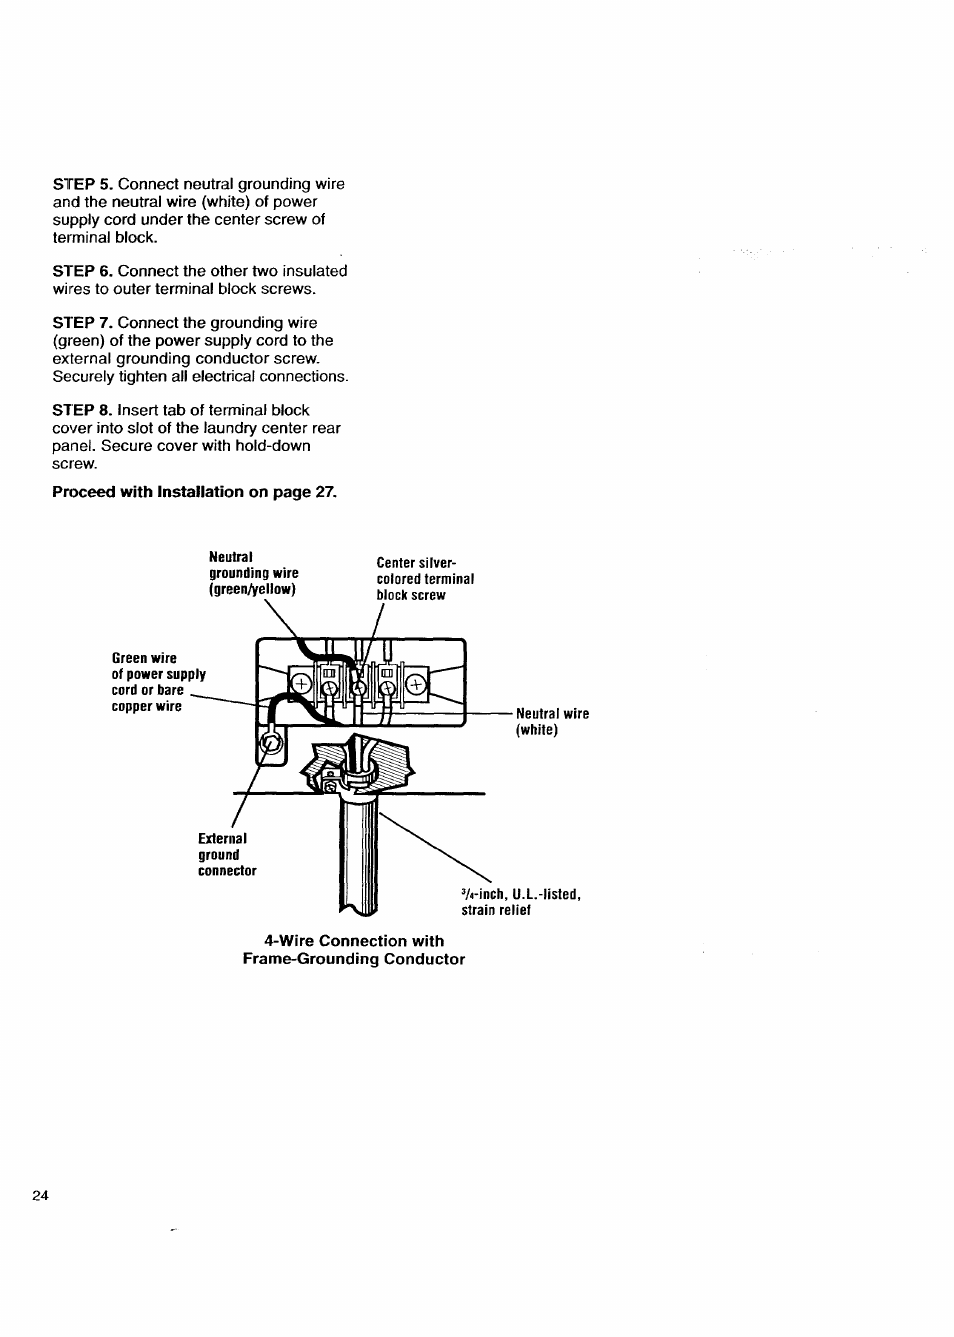 hight resolution of wire connection with frame grounding conductor kenmore washer dryer user manual page 24 66